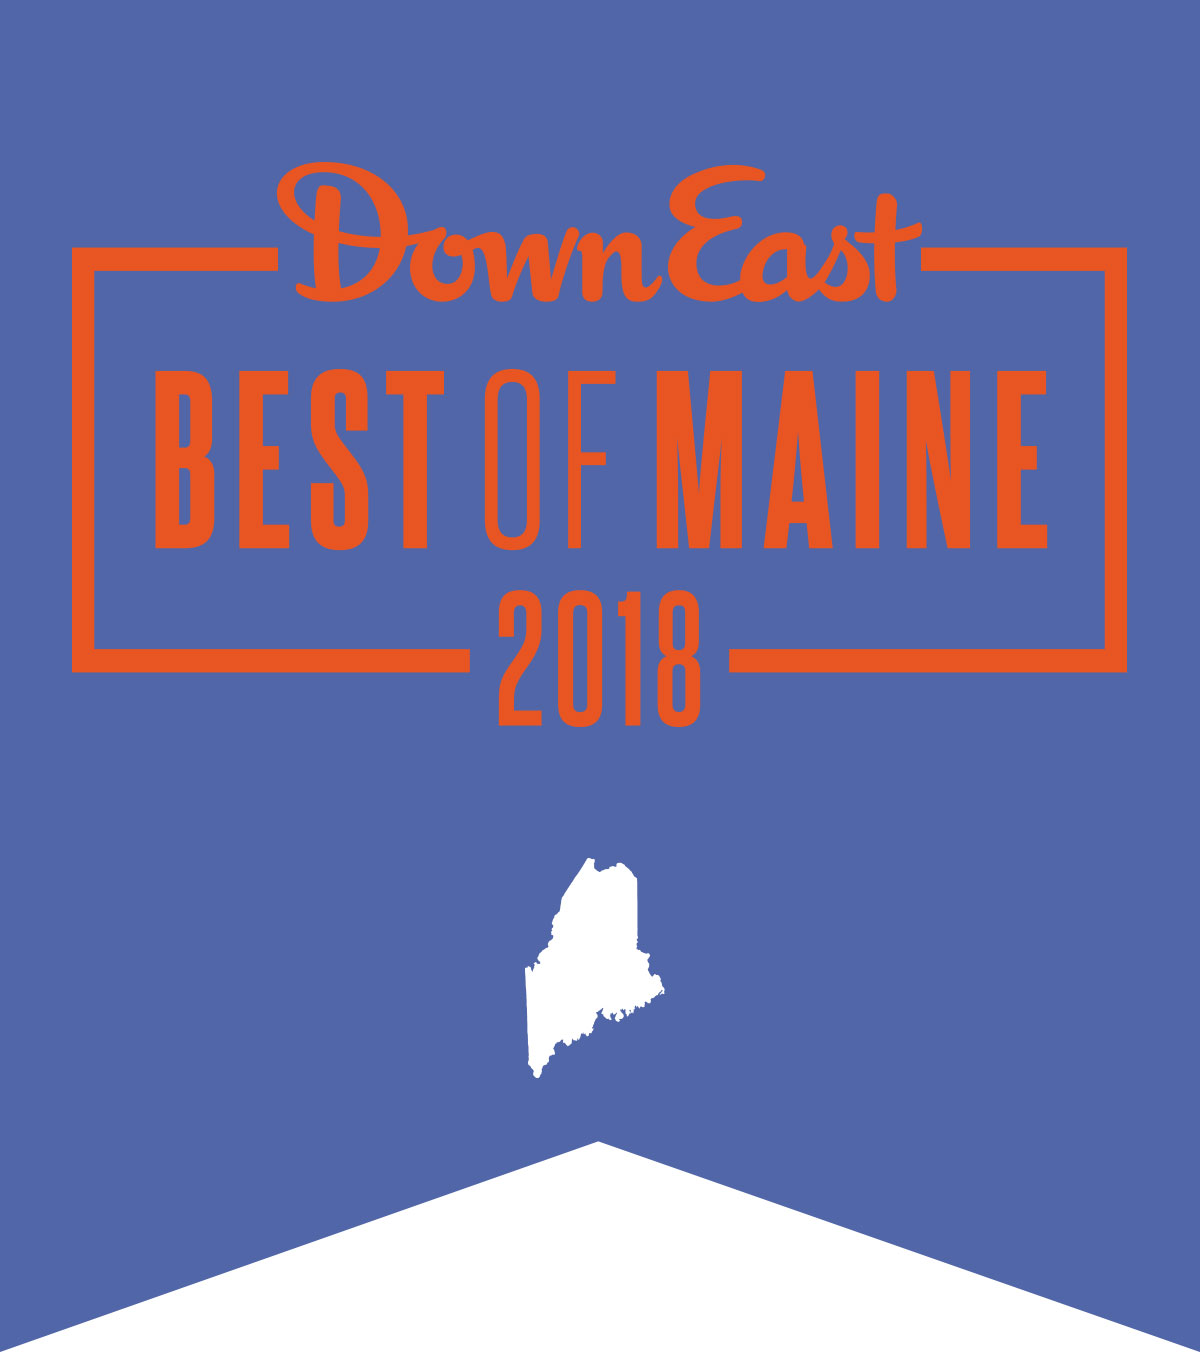 Knickerbocker Group is Down East Magazine's Best of Maine 2018